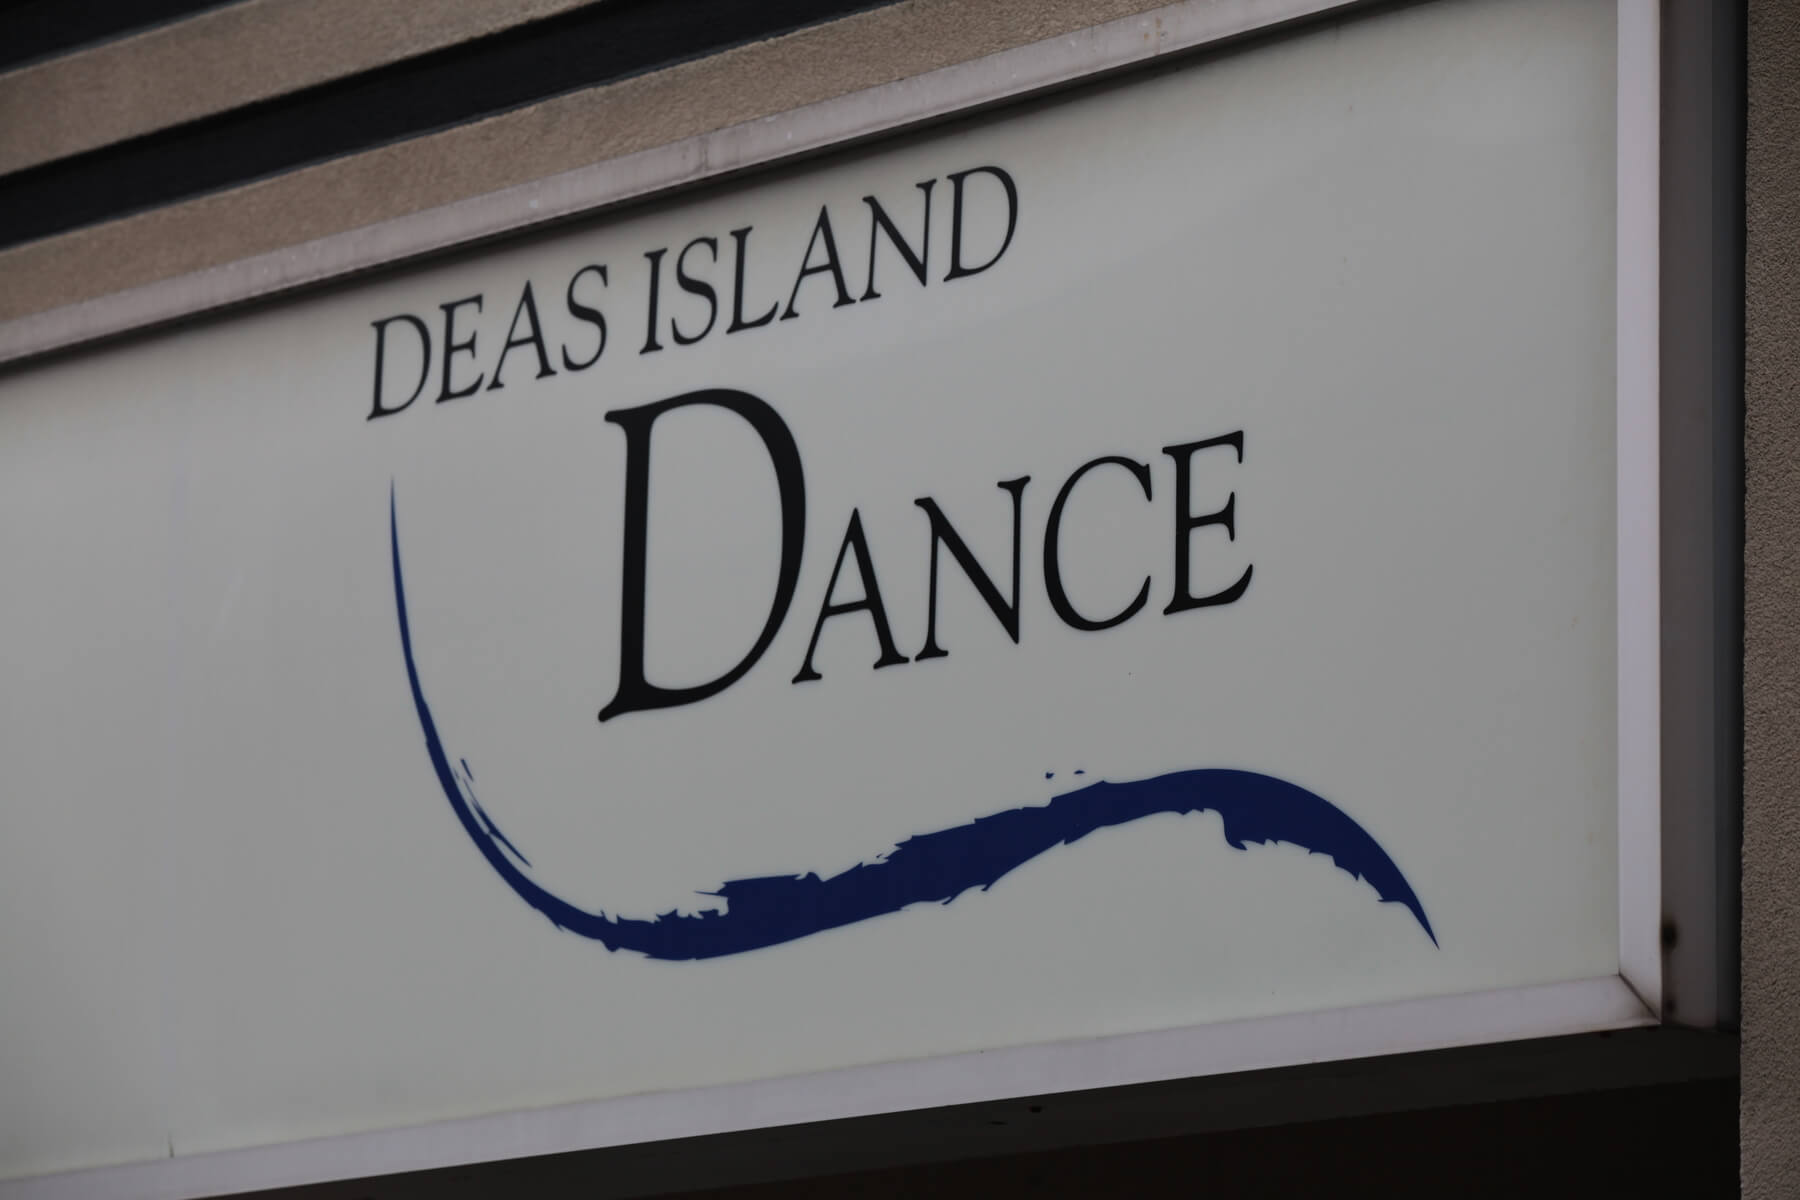 Image shows the Deas Island Dance sign above the front entrance as seen from teh car parking.